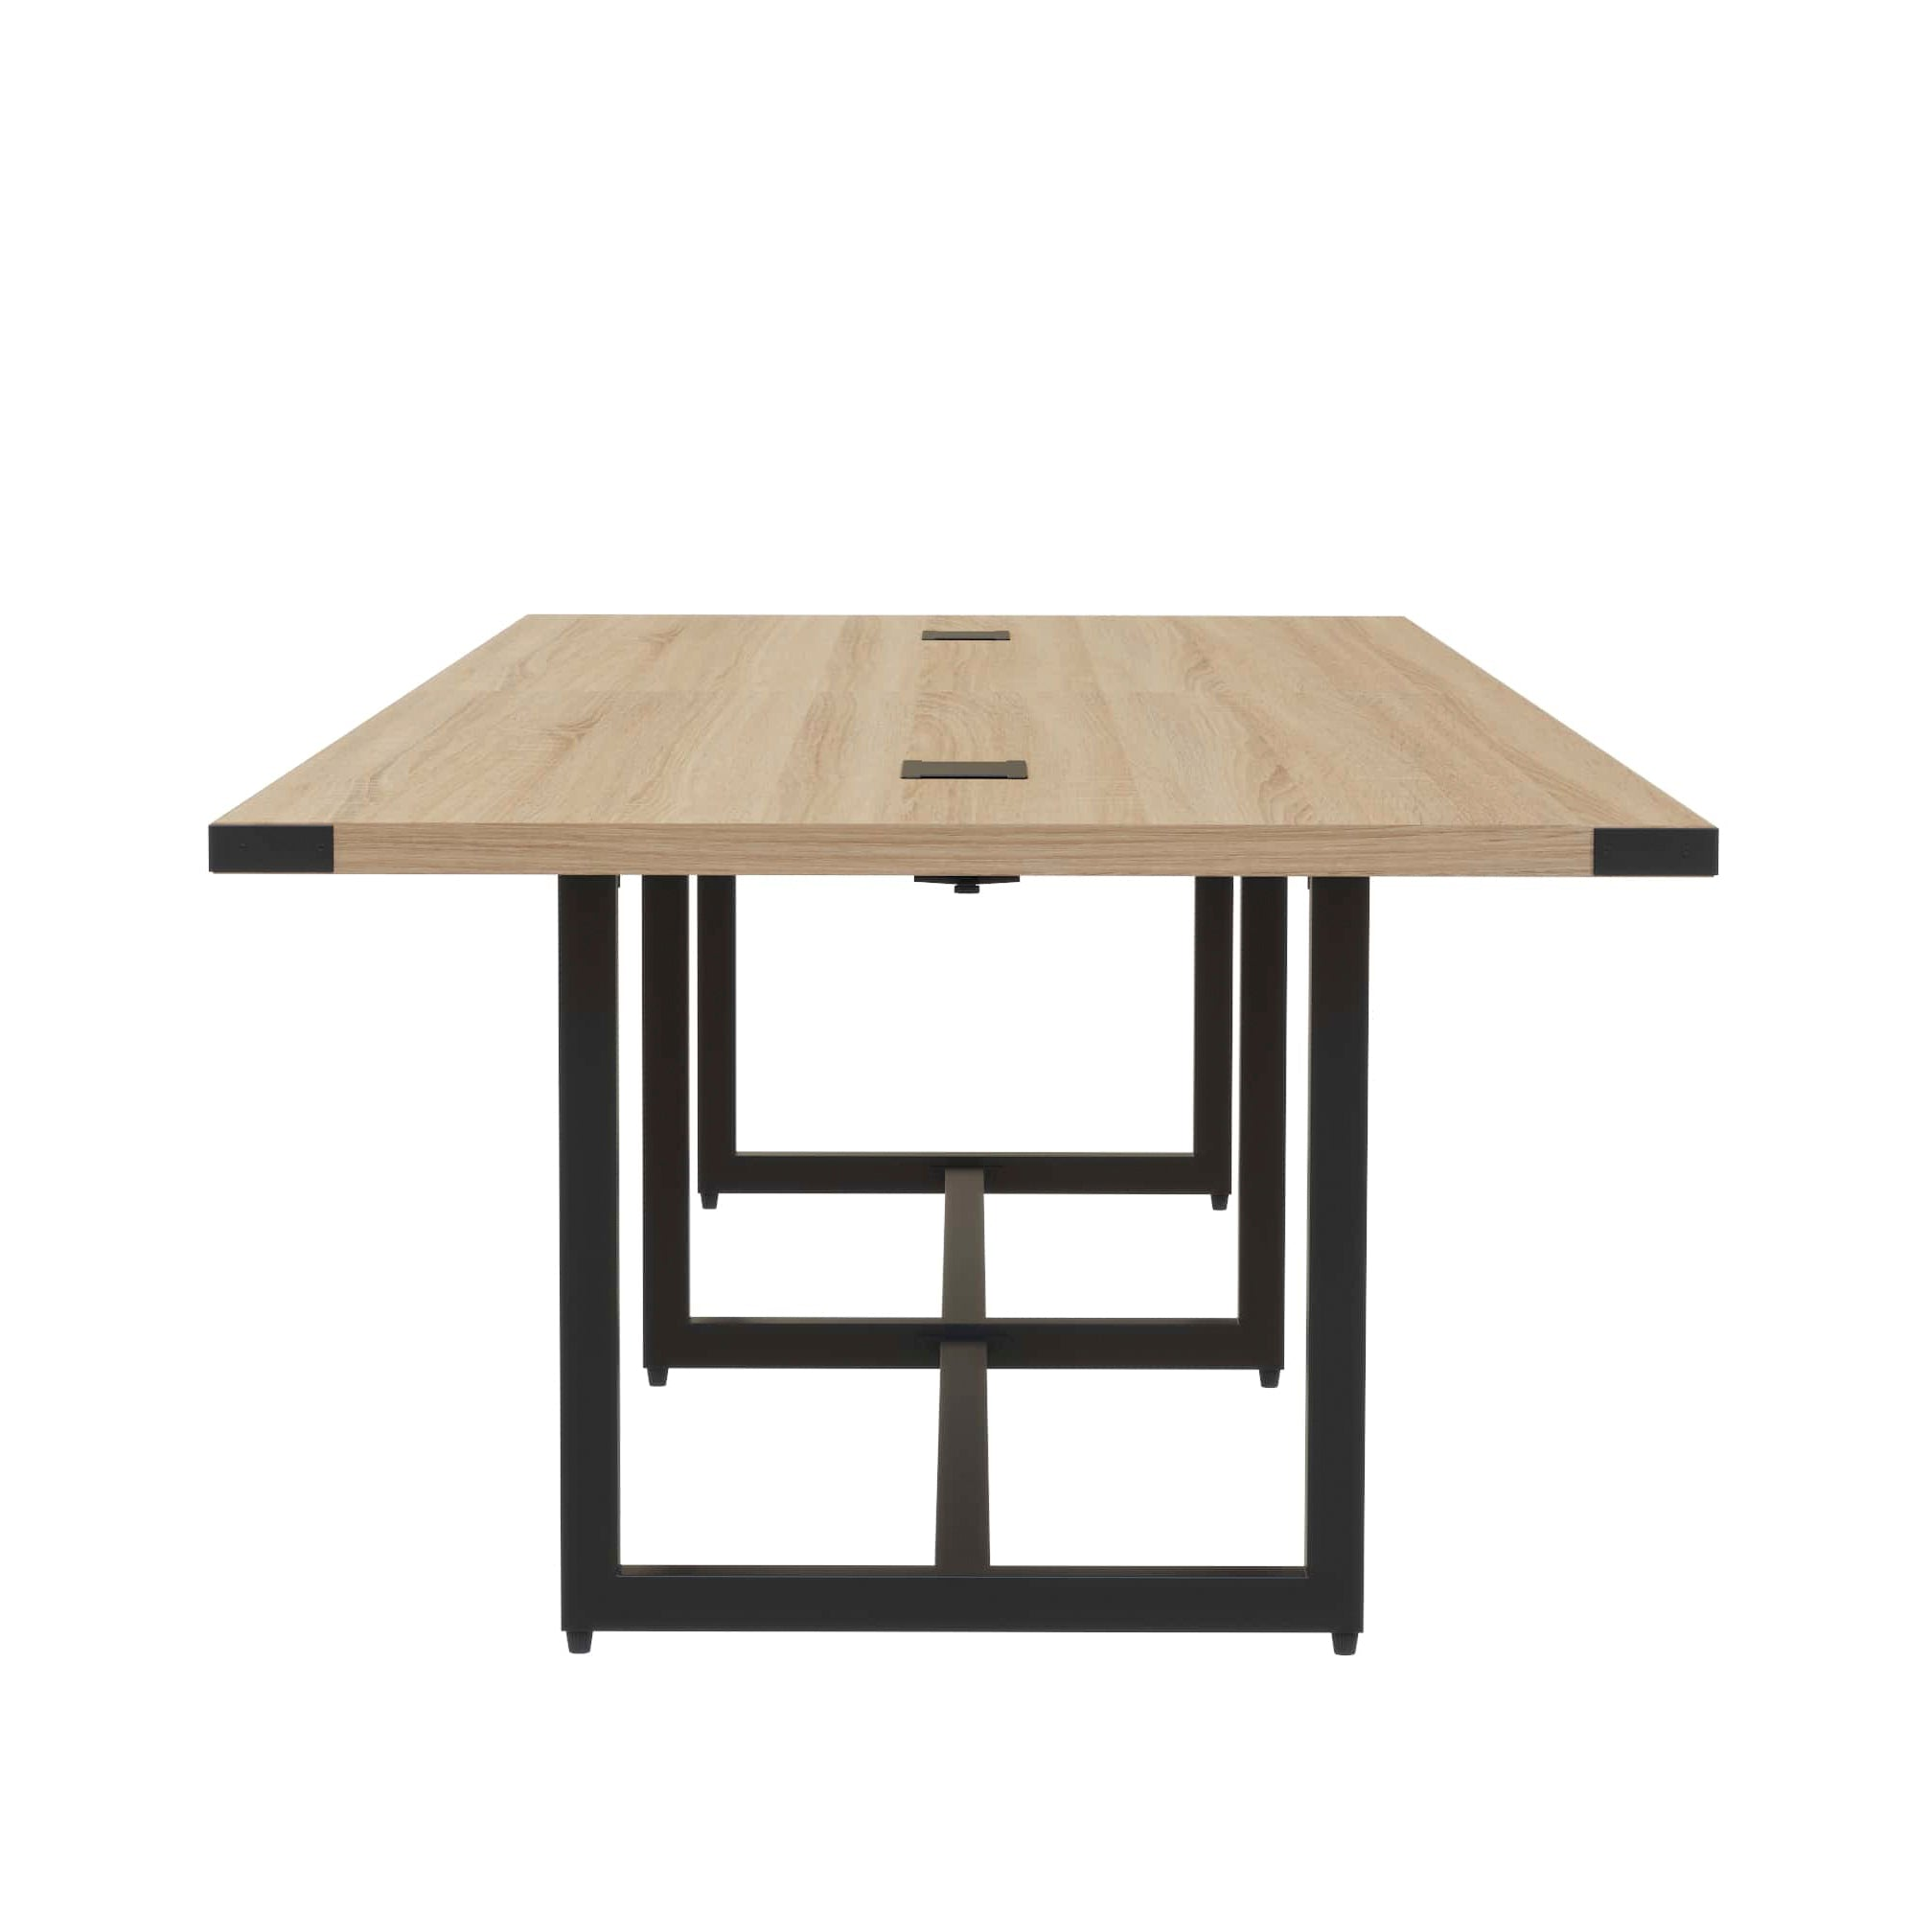 Mirella 12' Meeting Table